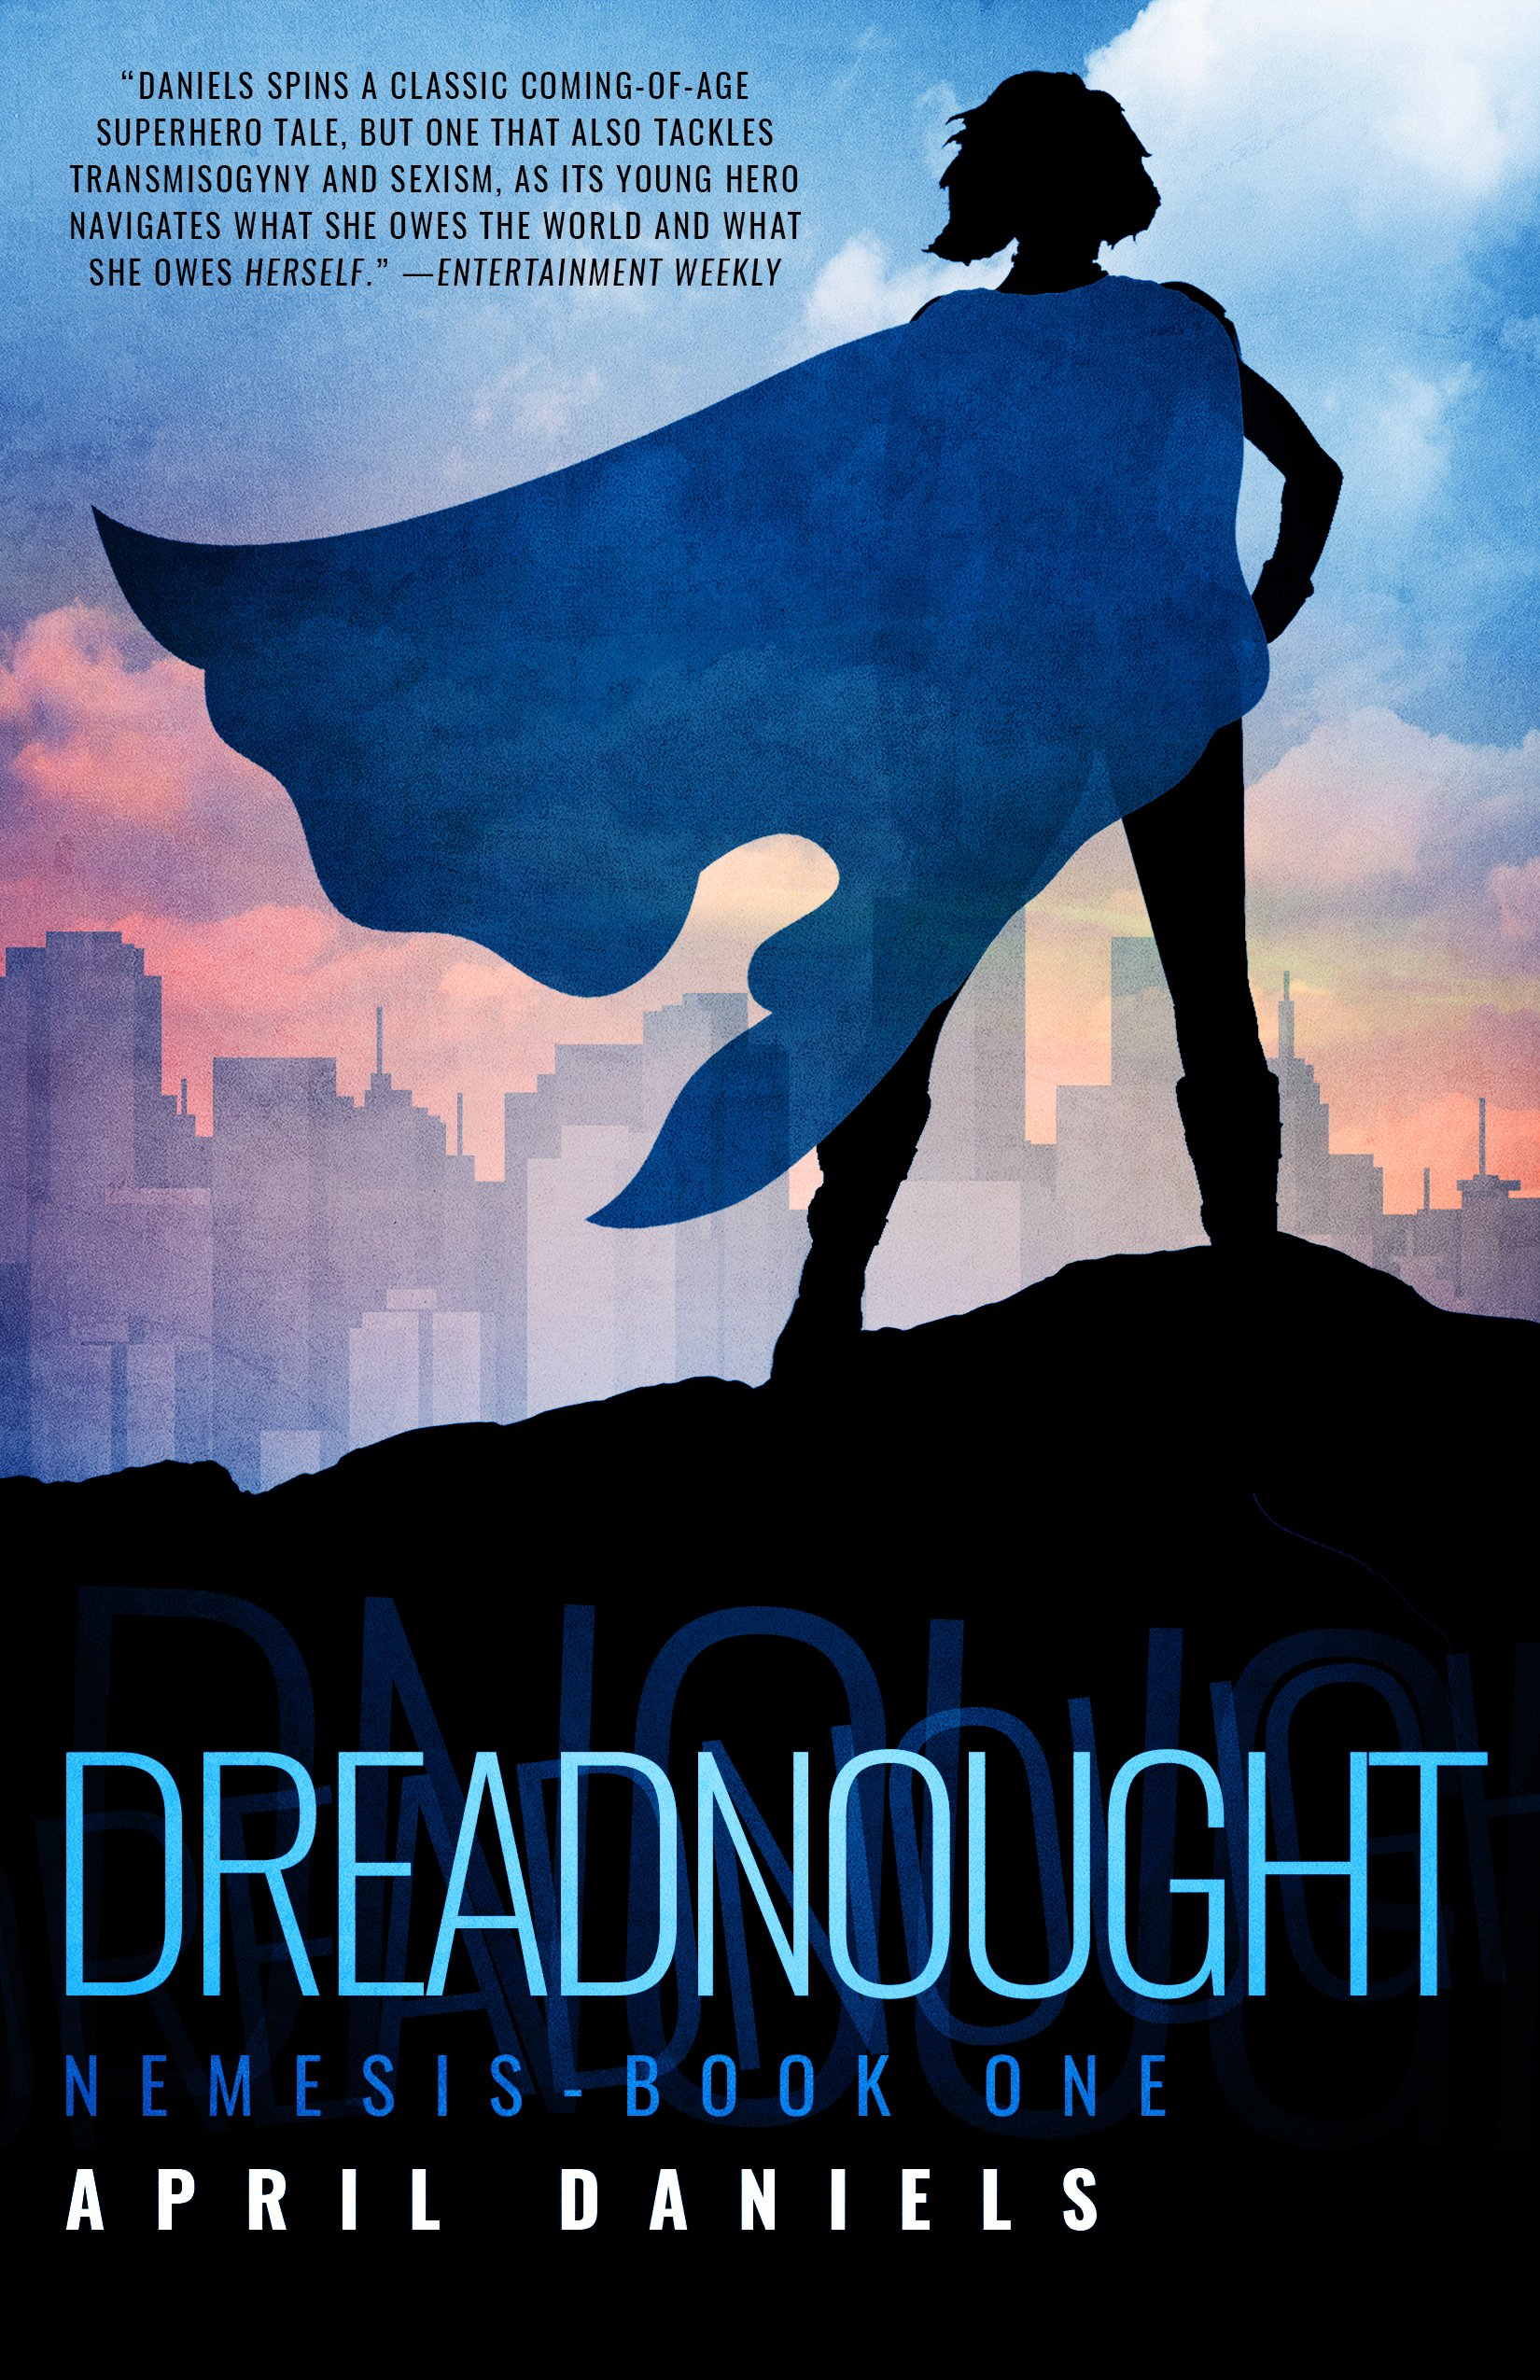 Amazon.com: Dreadnought: Nemesis - Book One (9781682300688 ...